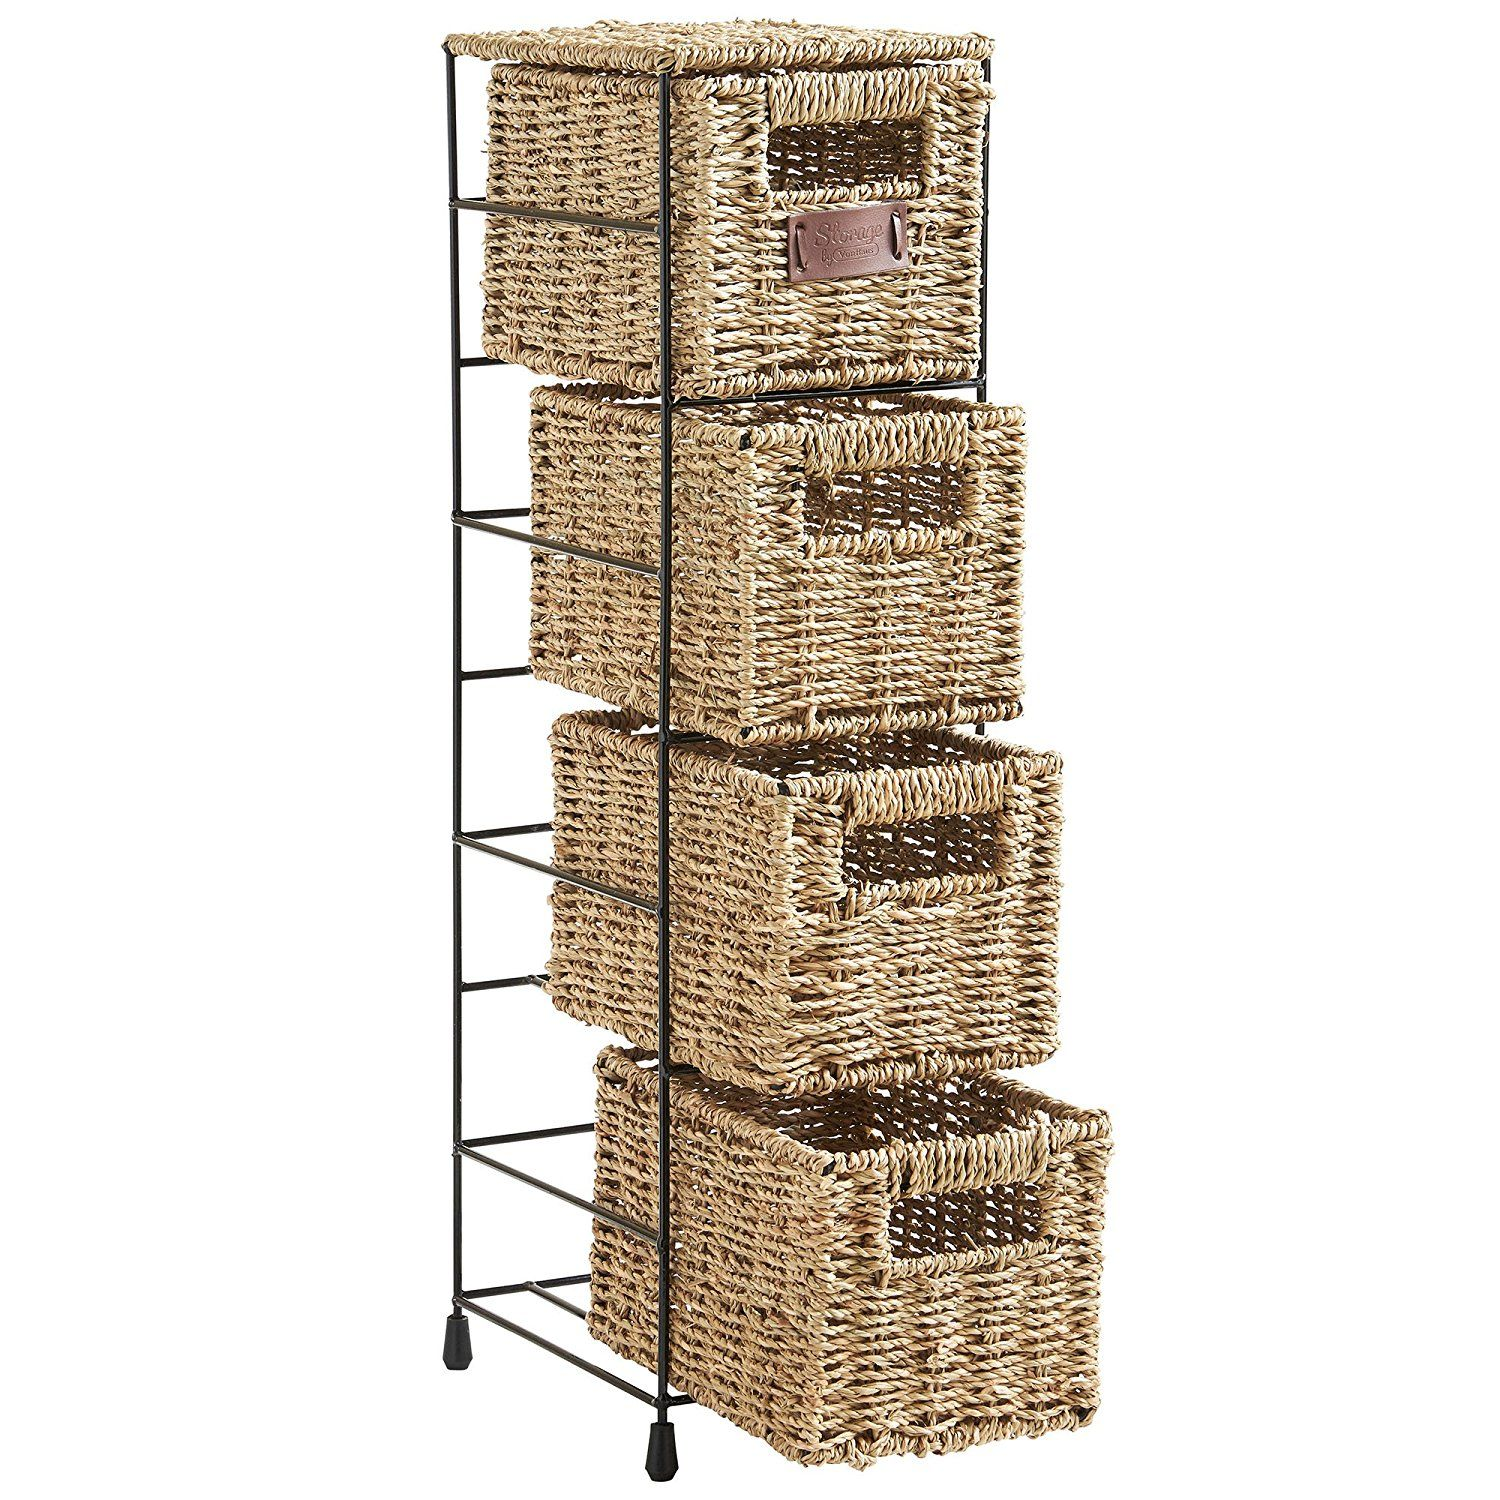 37 Vonhaus 4 Tier Small Seagrass Basket Storage Tower Unit With Metal Frame Ideal For Small Bathrooms 25 4 Storage Baskets Bathroom Storage Units Storage